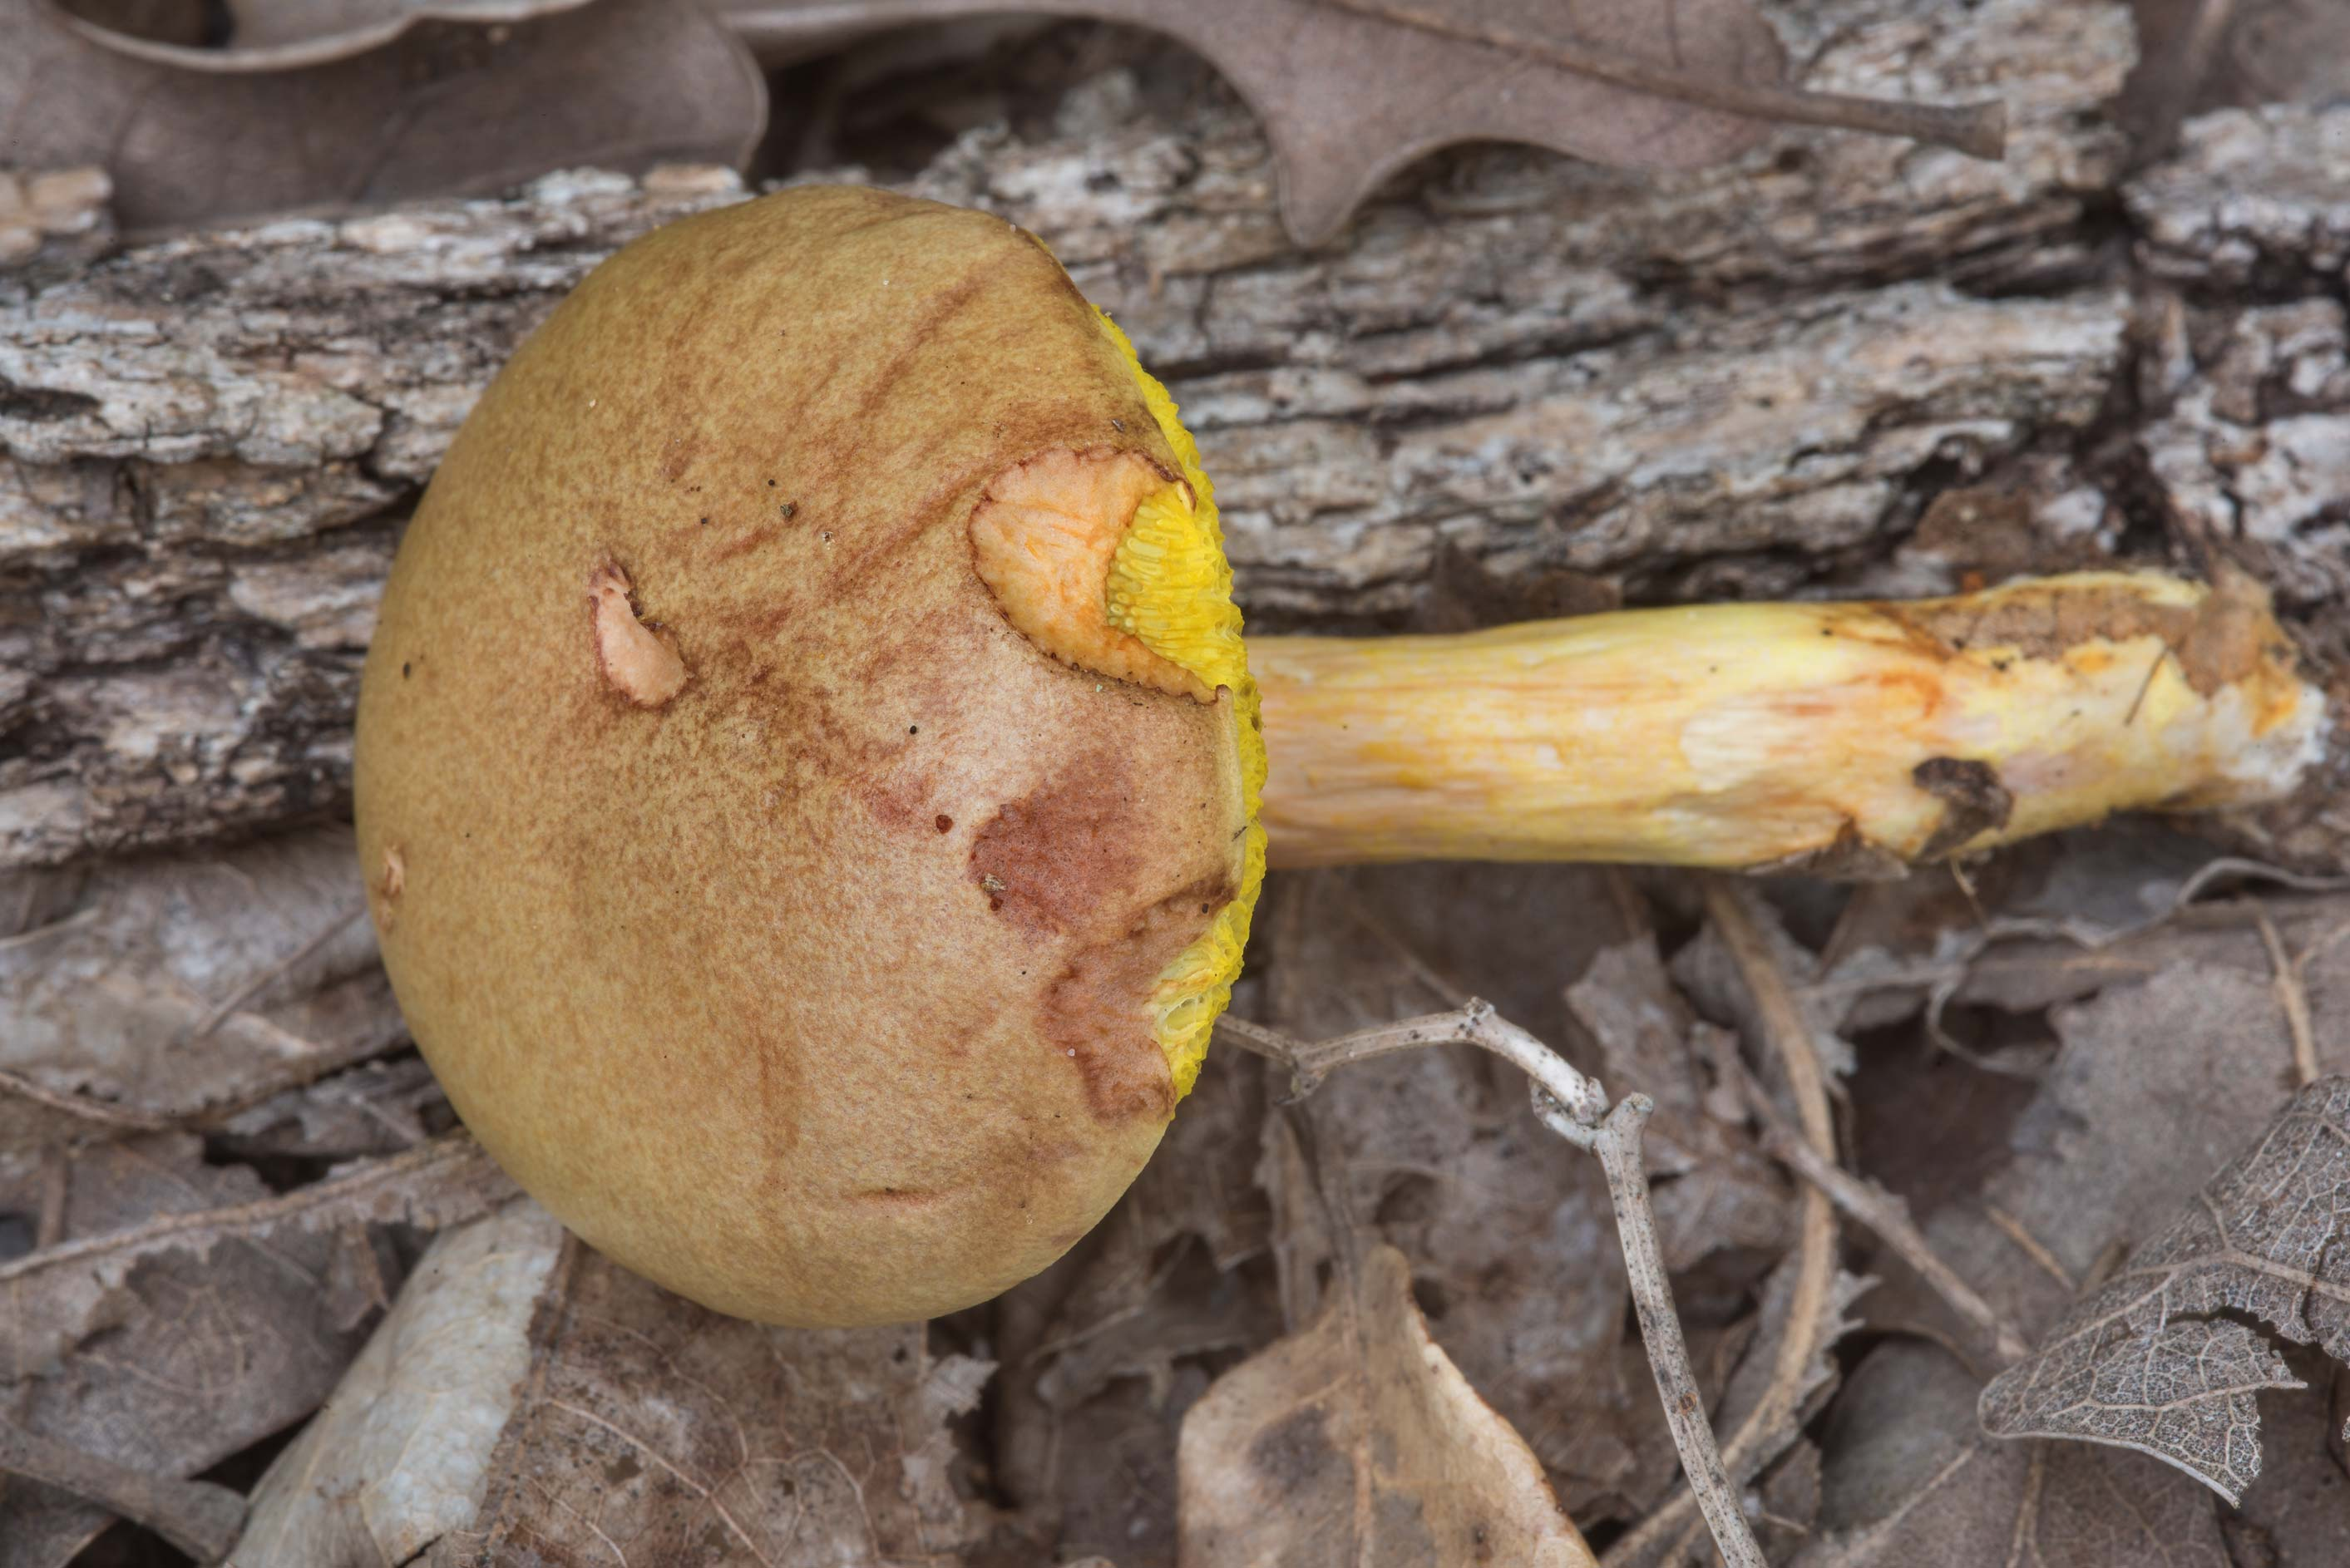 Bolete mushroom Aureoboletus auriporus in Lick Creek Park. College Station, Texas